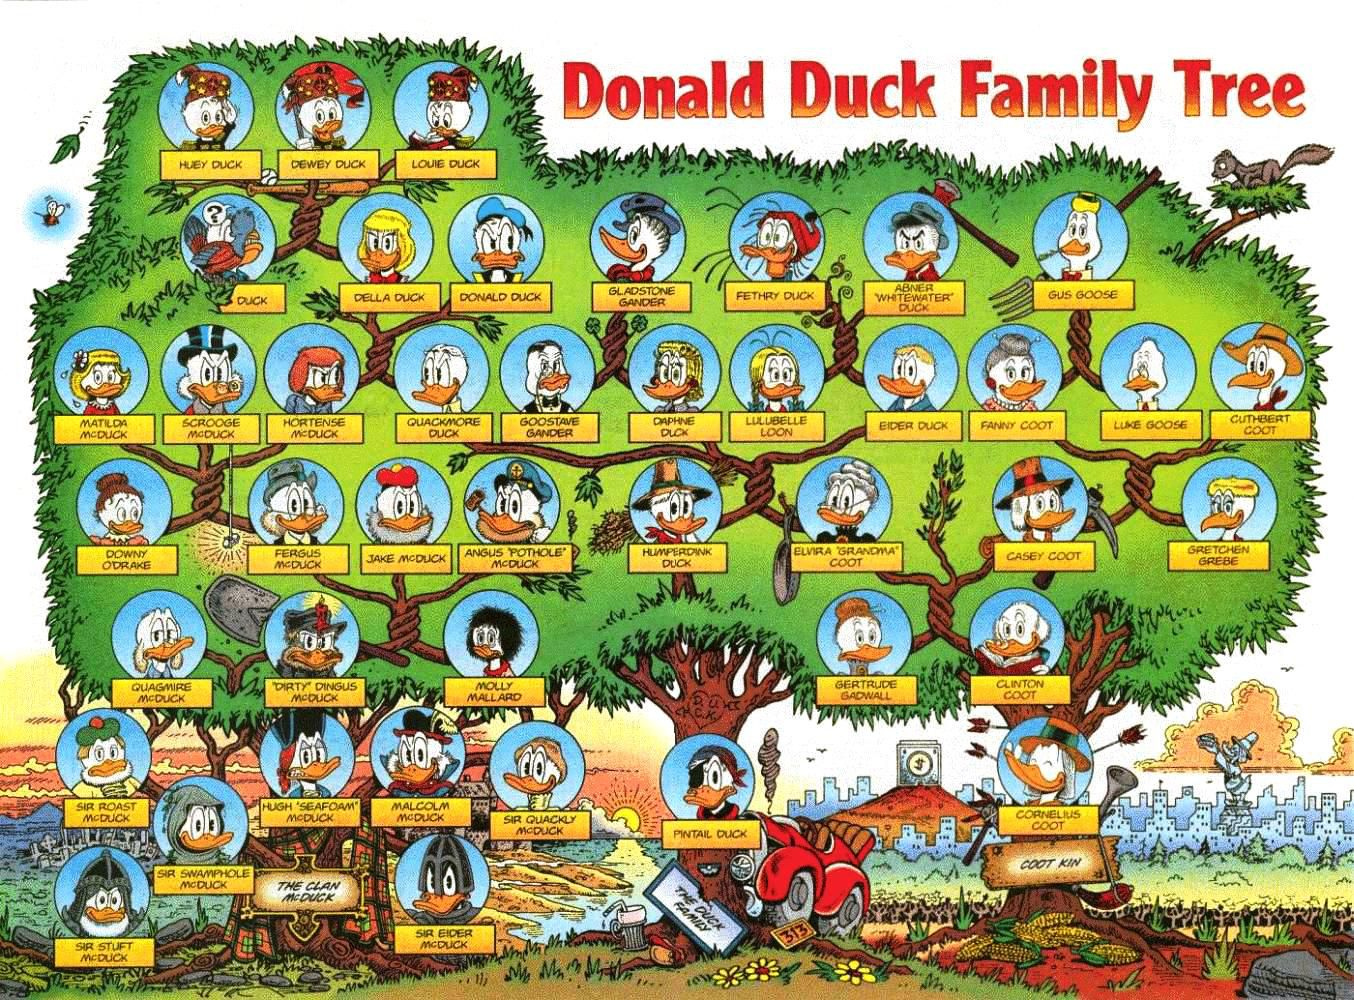 Donald duck wallpaper and achtergrond 1354x1000 id 475510 - Family tree desktop wallpaper ...